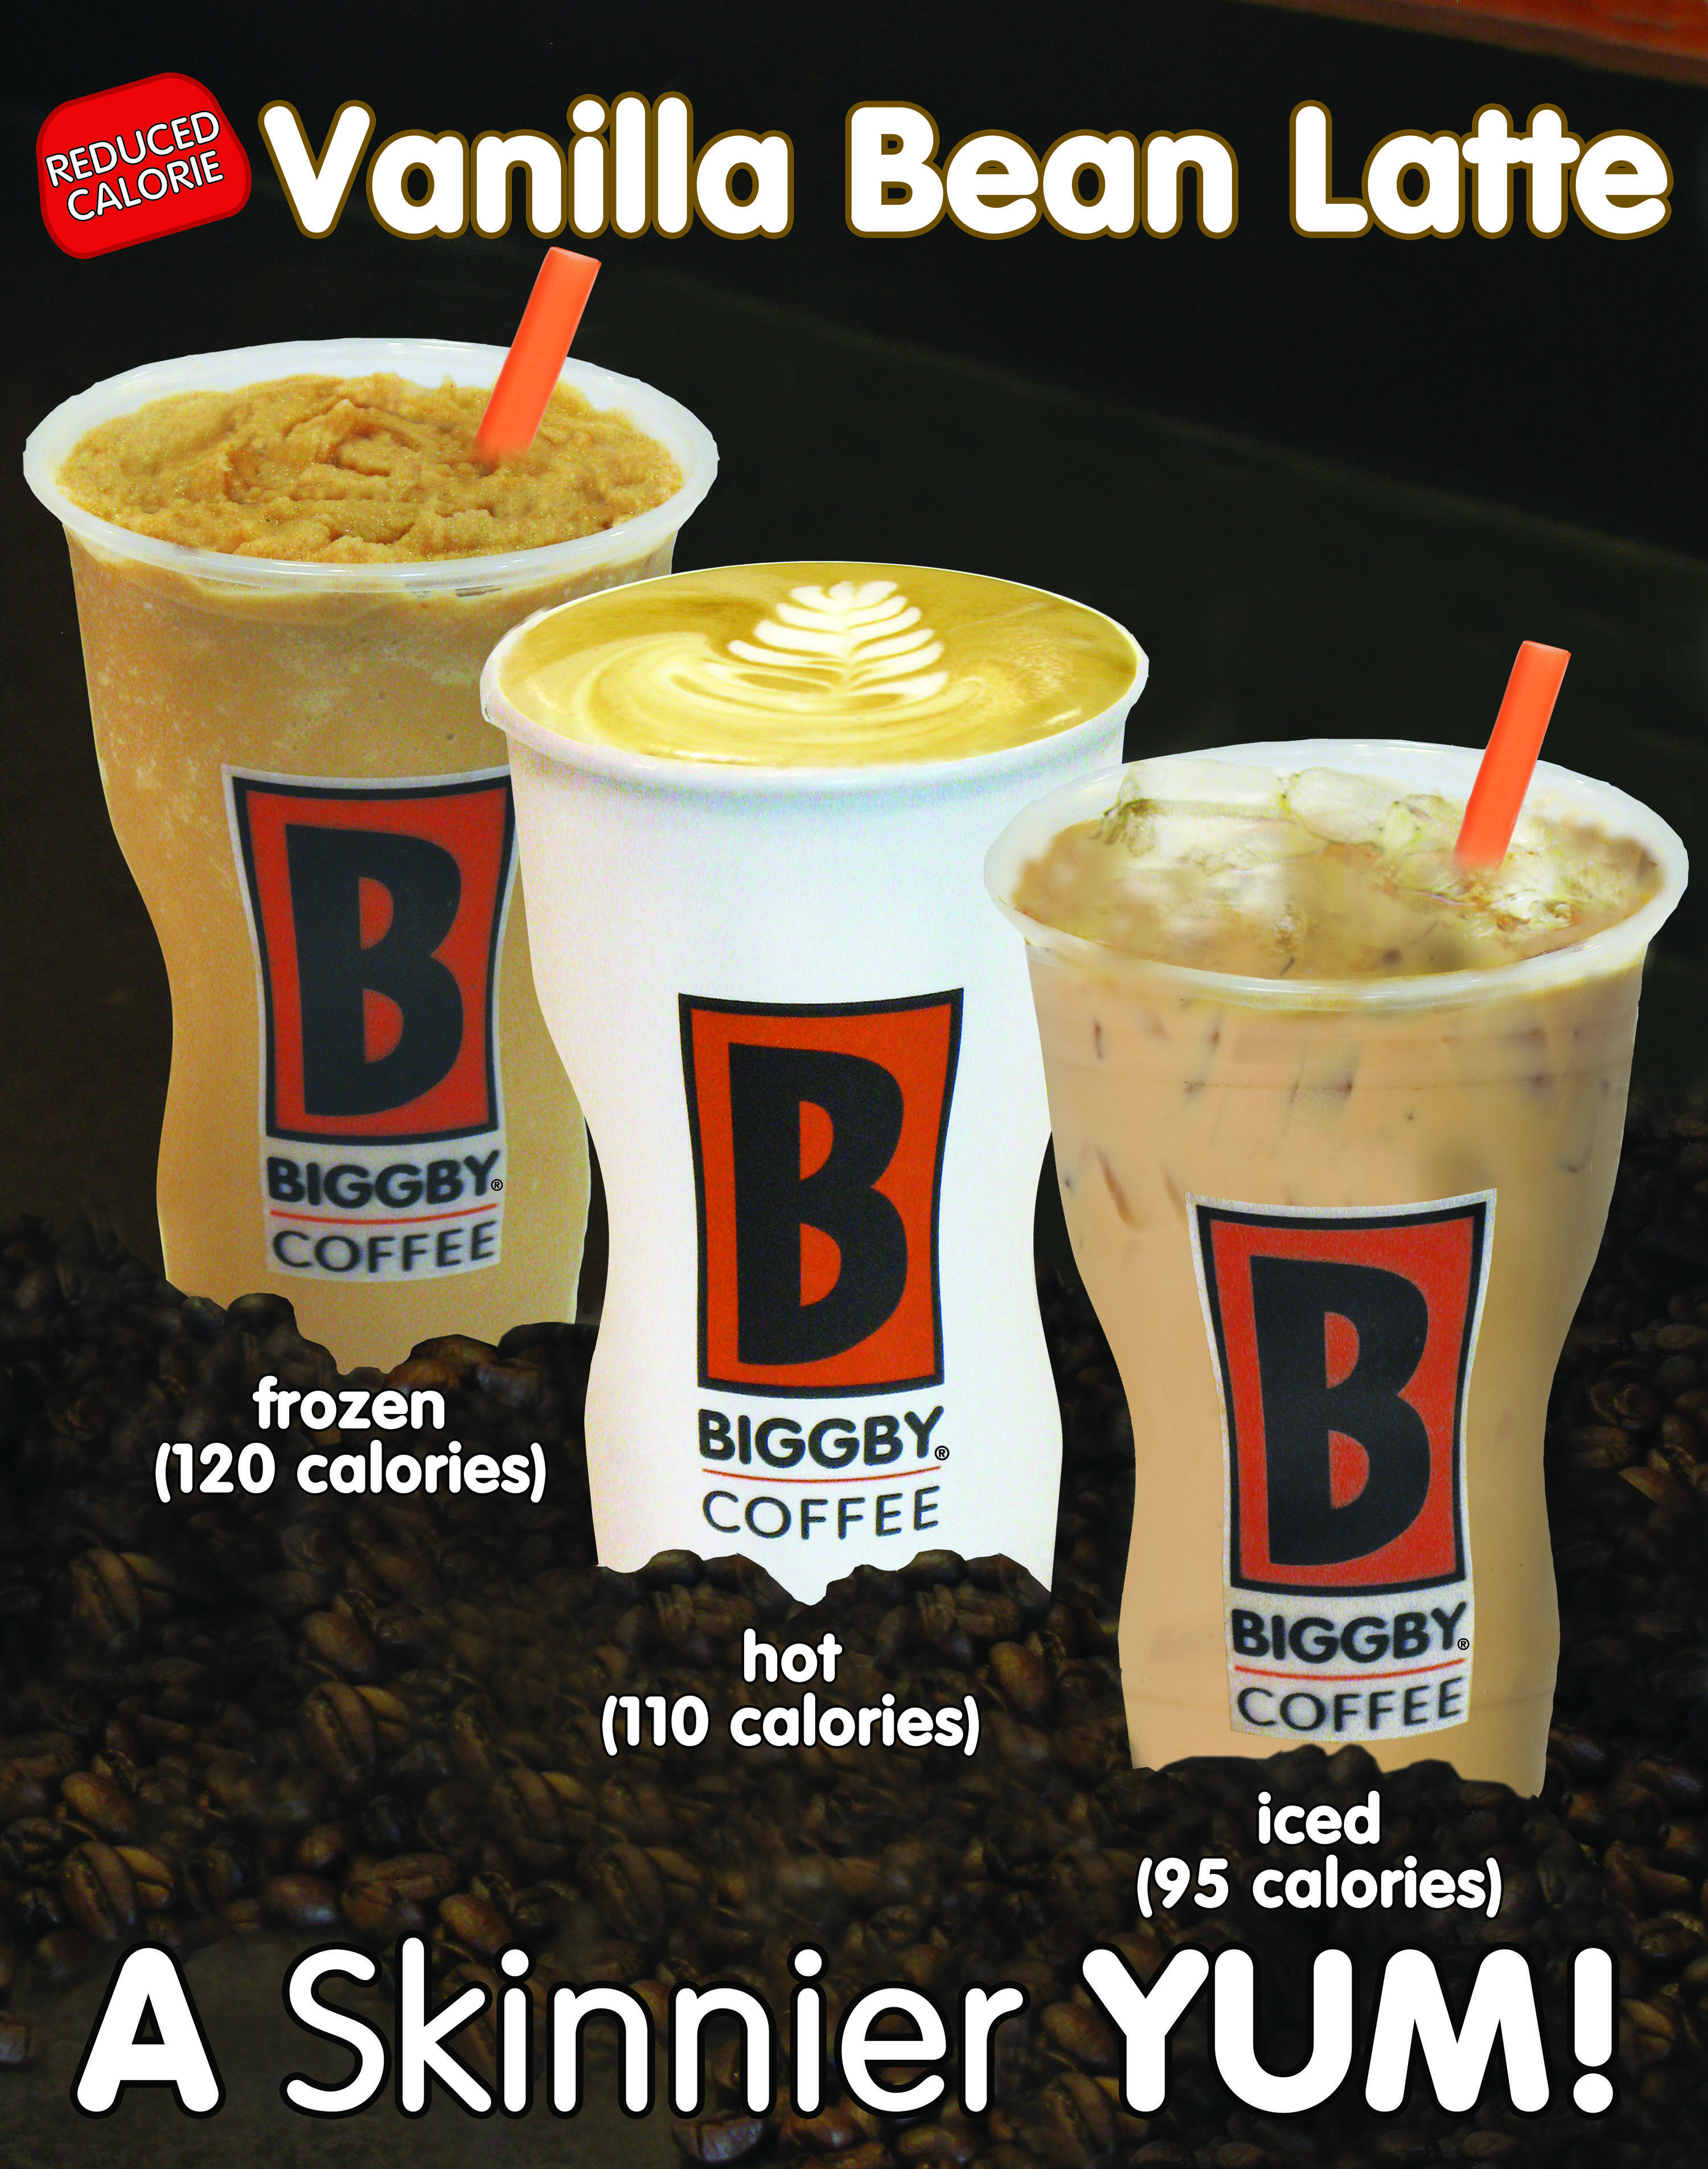 Reduced Calorie Vanilla Bean Latte Low Calorie Drinks Healthy Coffee Low Carb Drinks